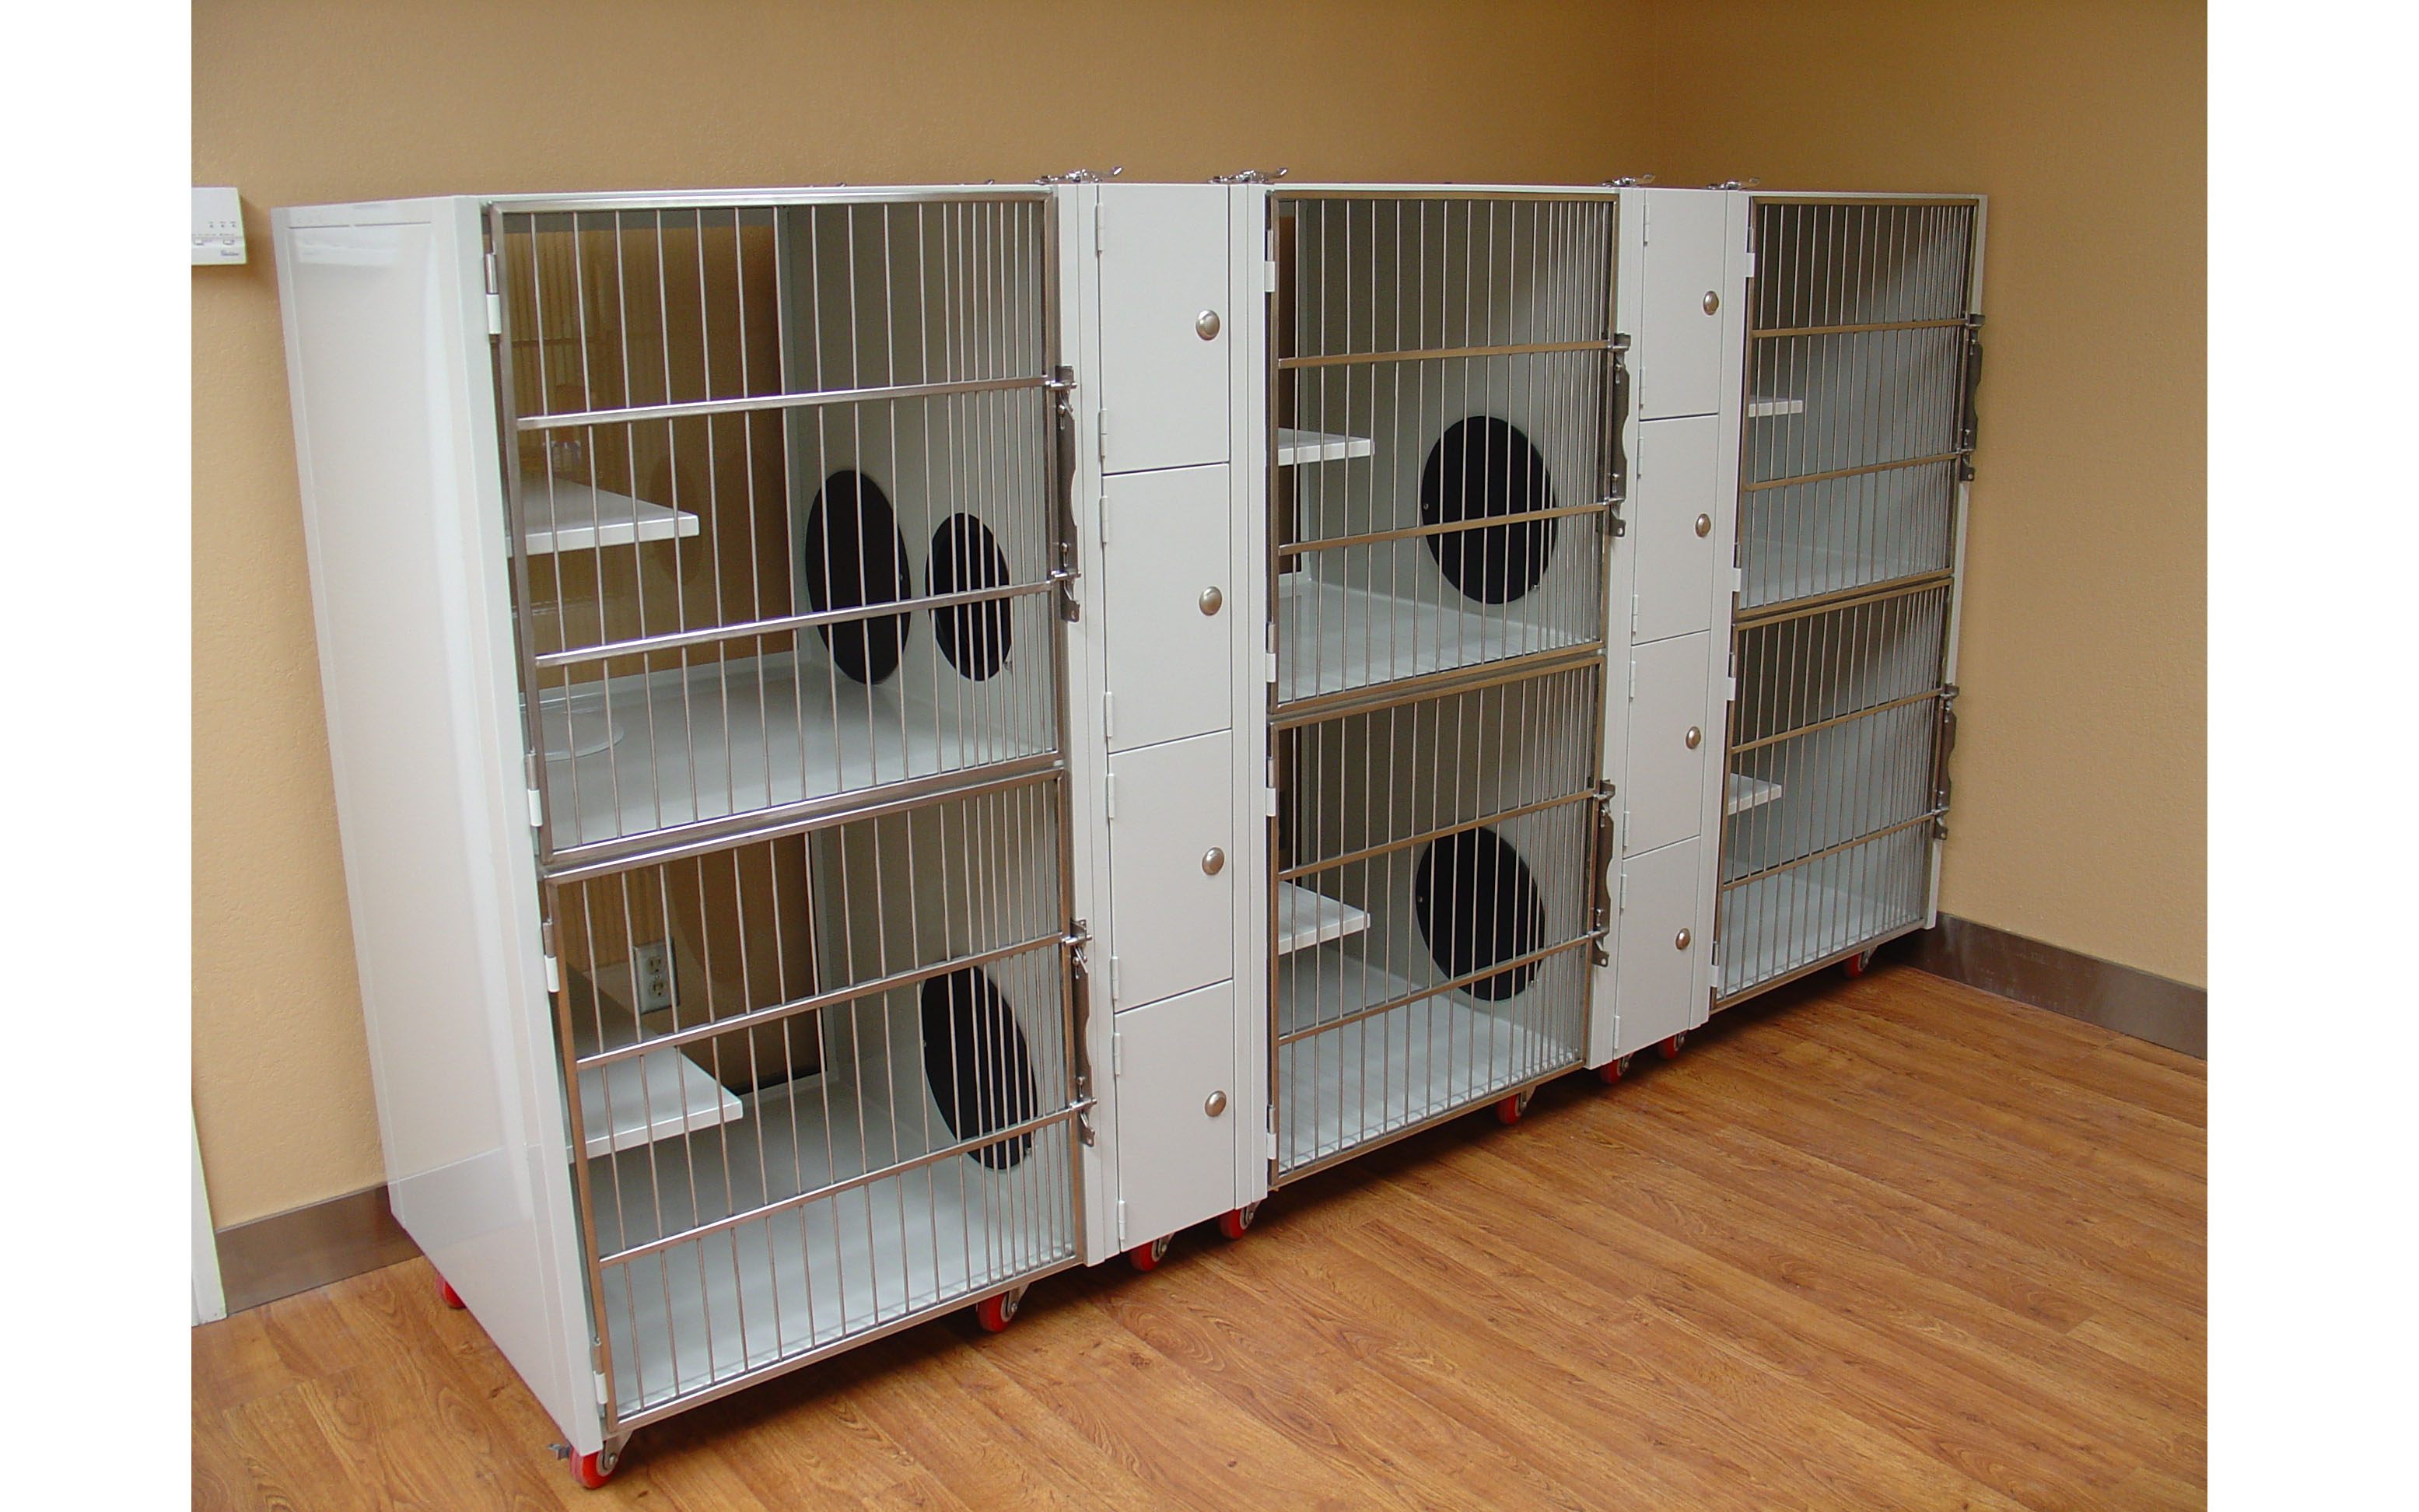 Powder Coated Double Stack Kitty Litter Direct Animal